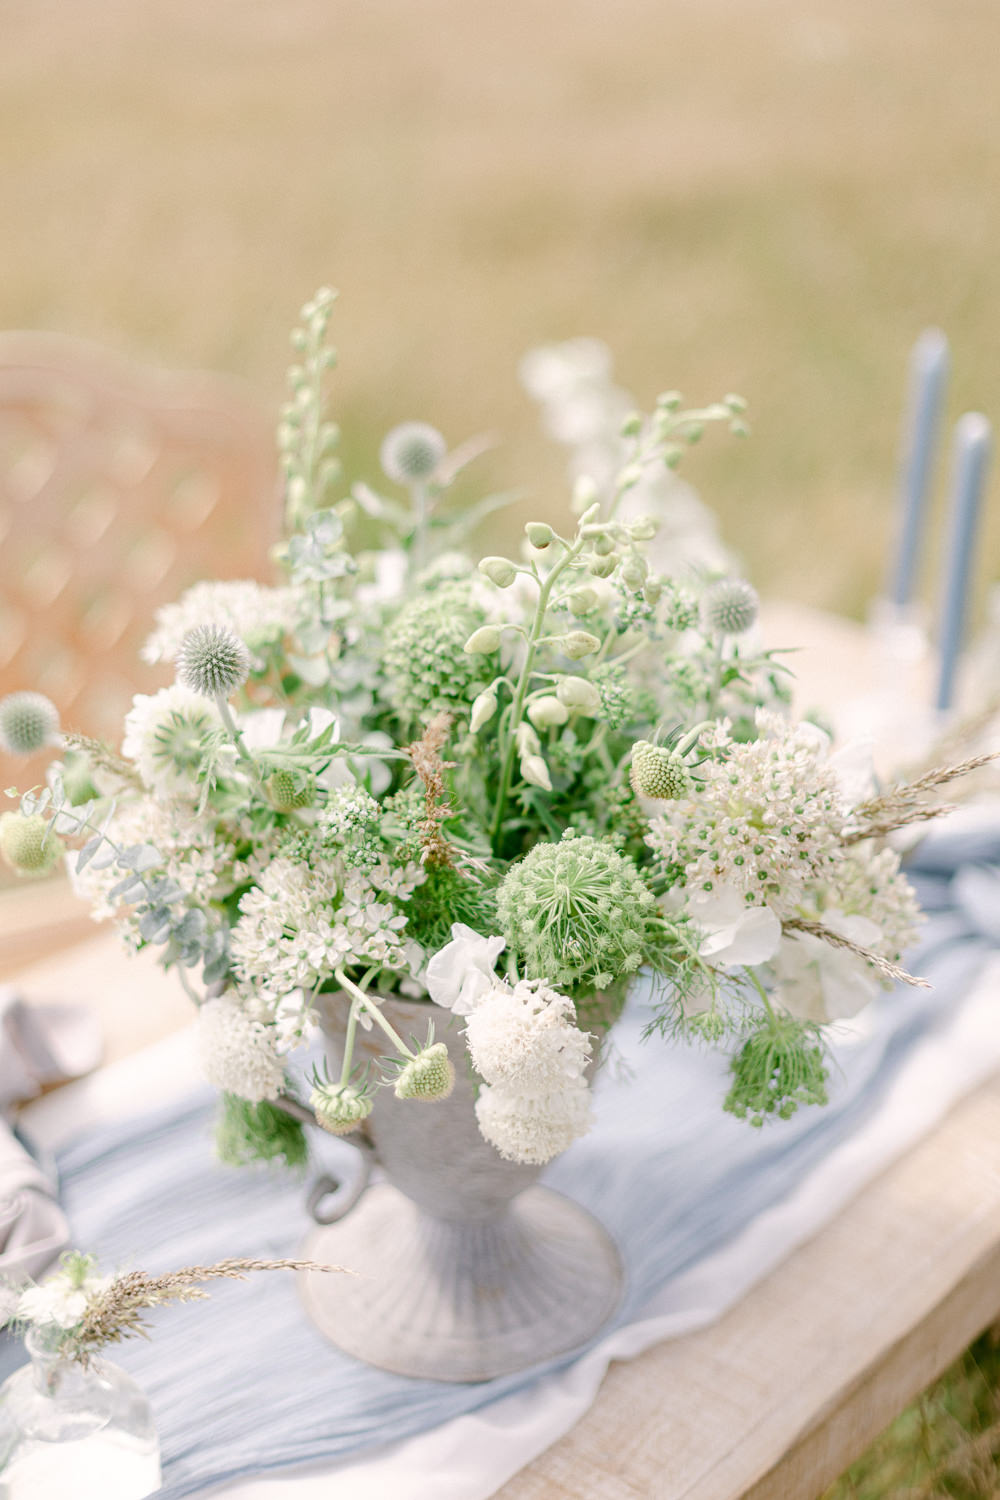 Centrepiece Flowers Greenery Foliage Table Family Elopement Ideas Sophie May Photo